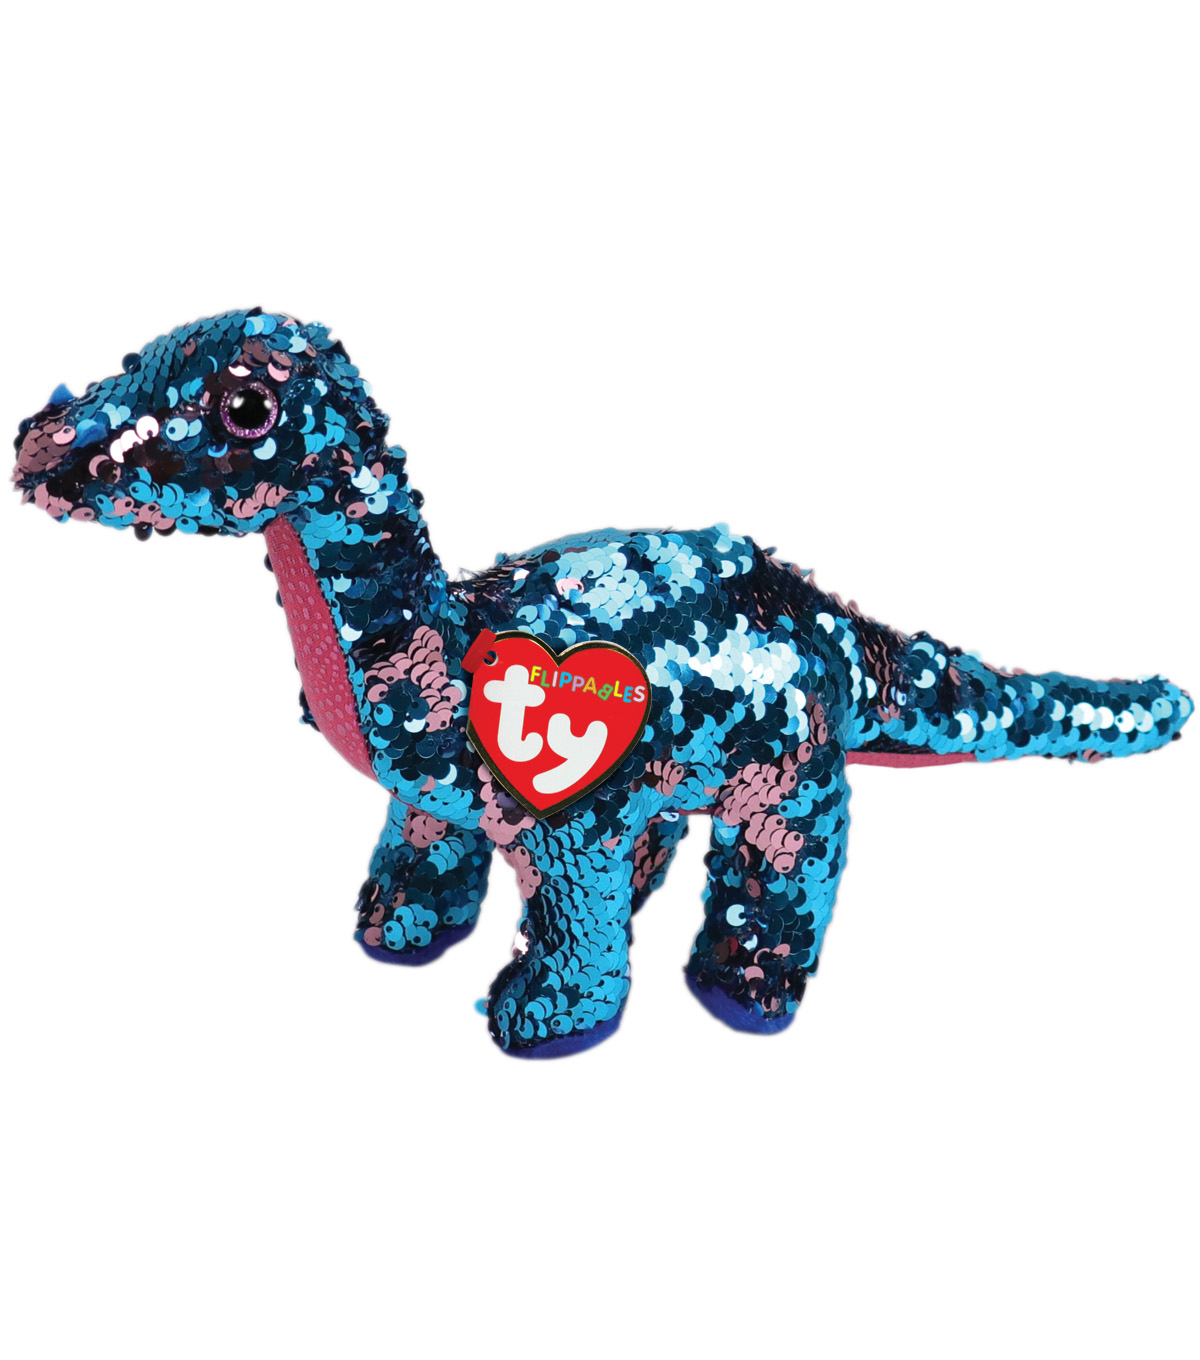 Ty Inc. Flippables Regular Sequin Tremor Dinosaur